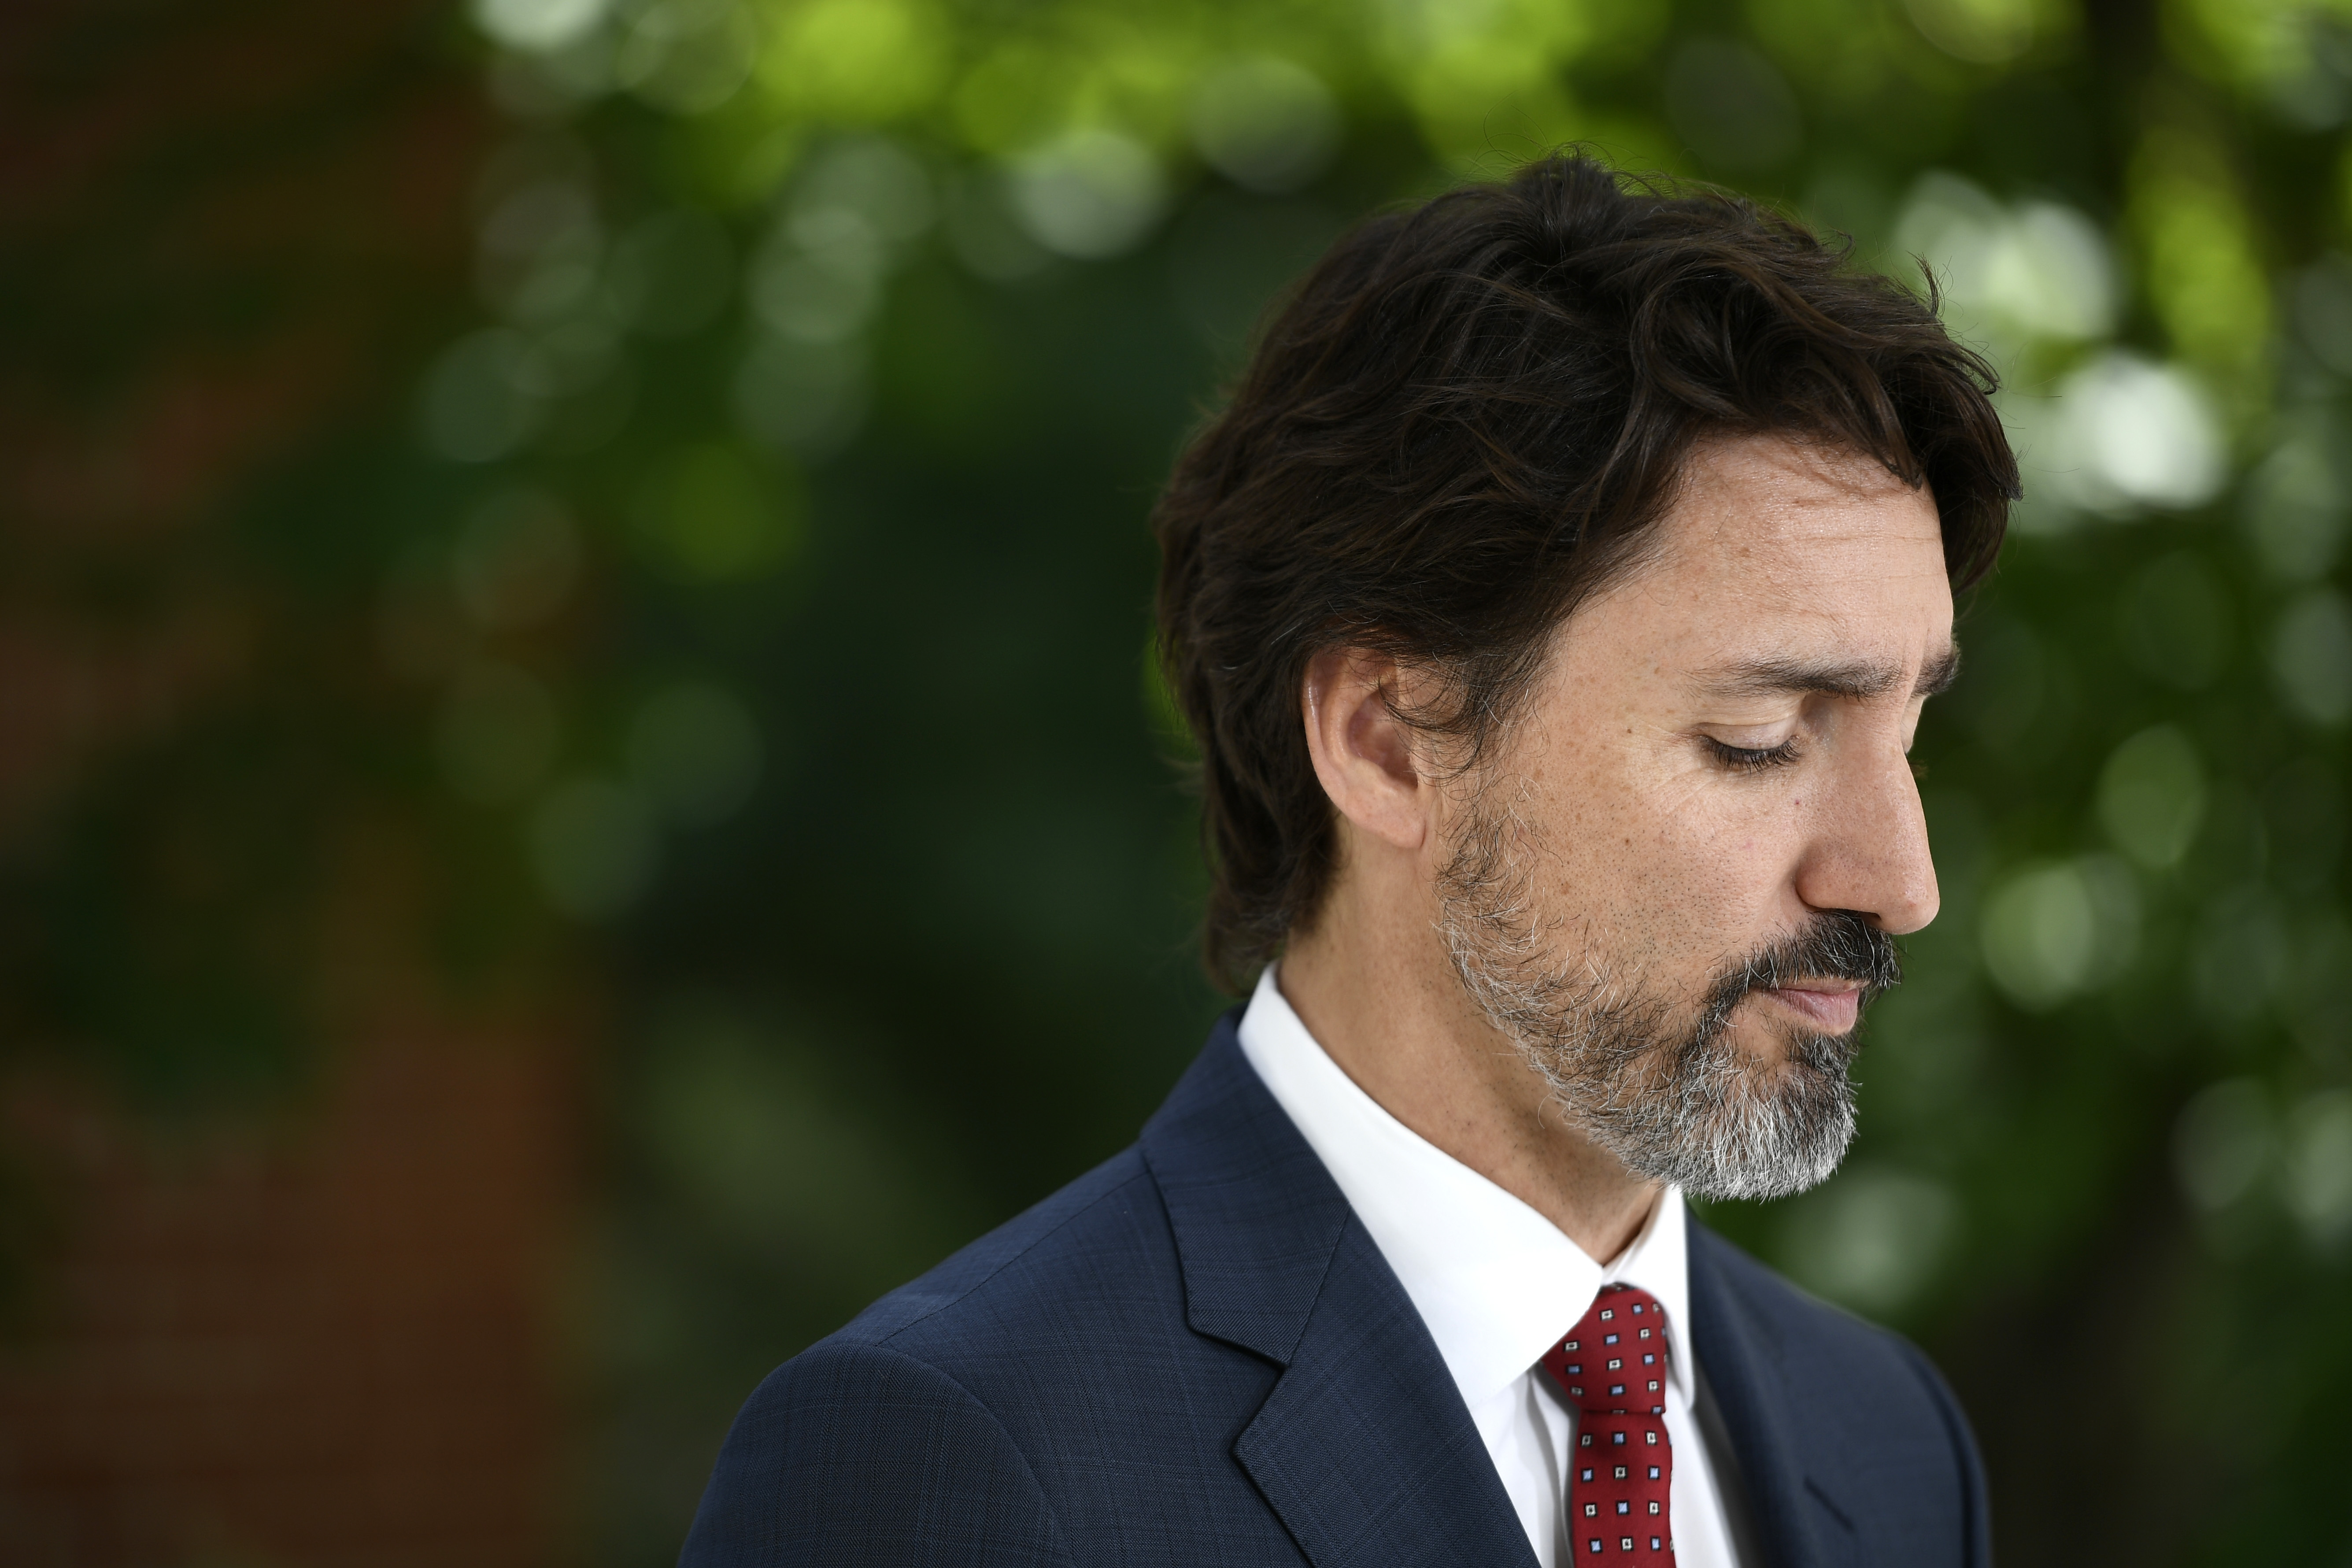 Prime Minister Justin Trudeau speaks during a news conference outside his residence at Rideau Cottage in Ottawa on June 18, 2020.